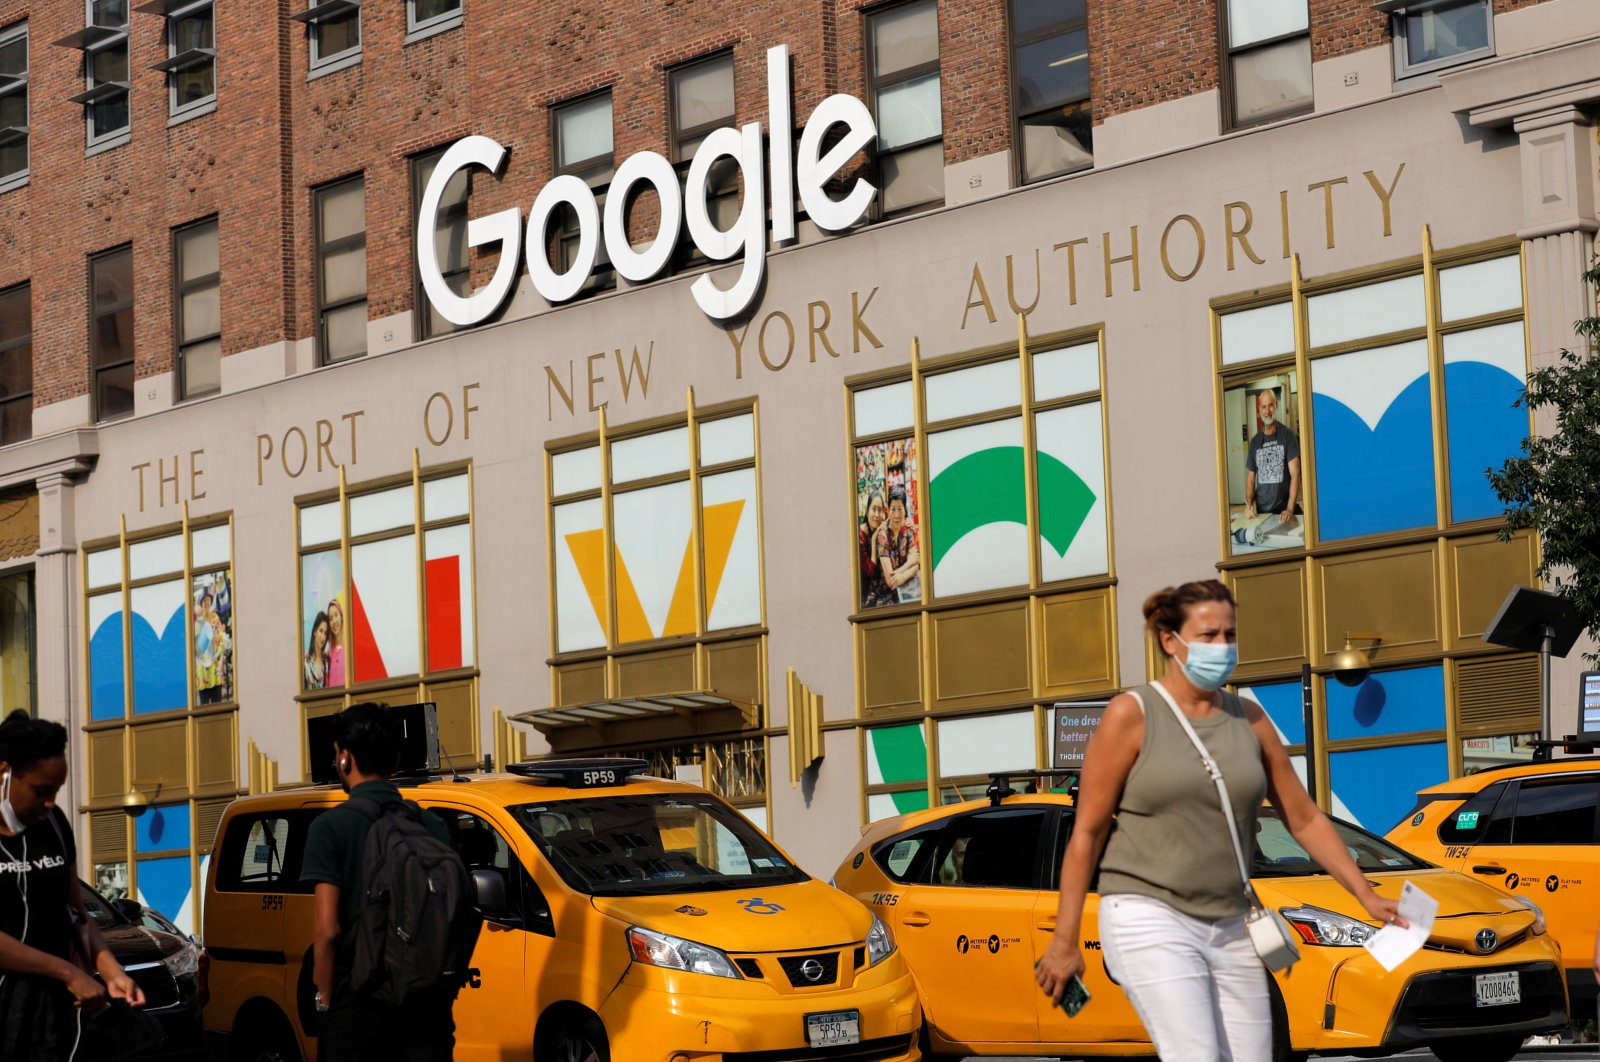 A person in a mask walks by the New York Google office in Manhattan, New York City, U.S., July 29, 2021. (Reuters Photo)